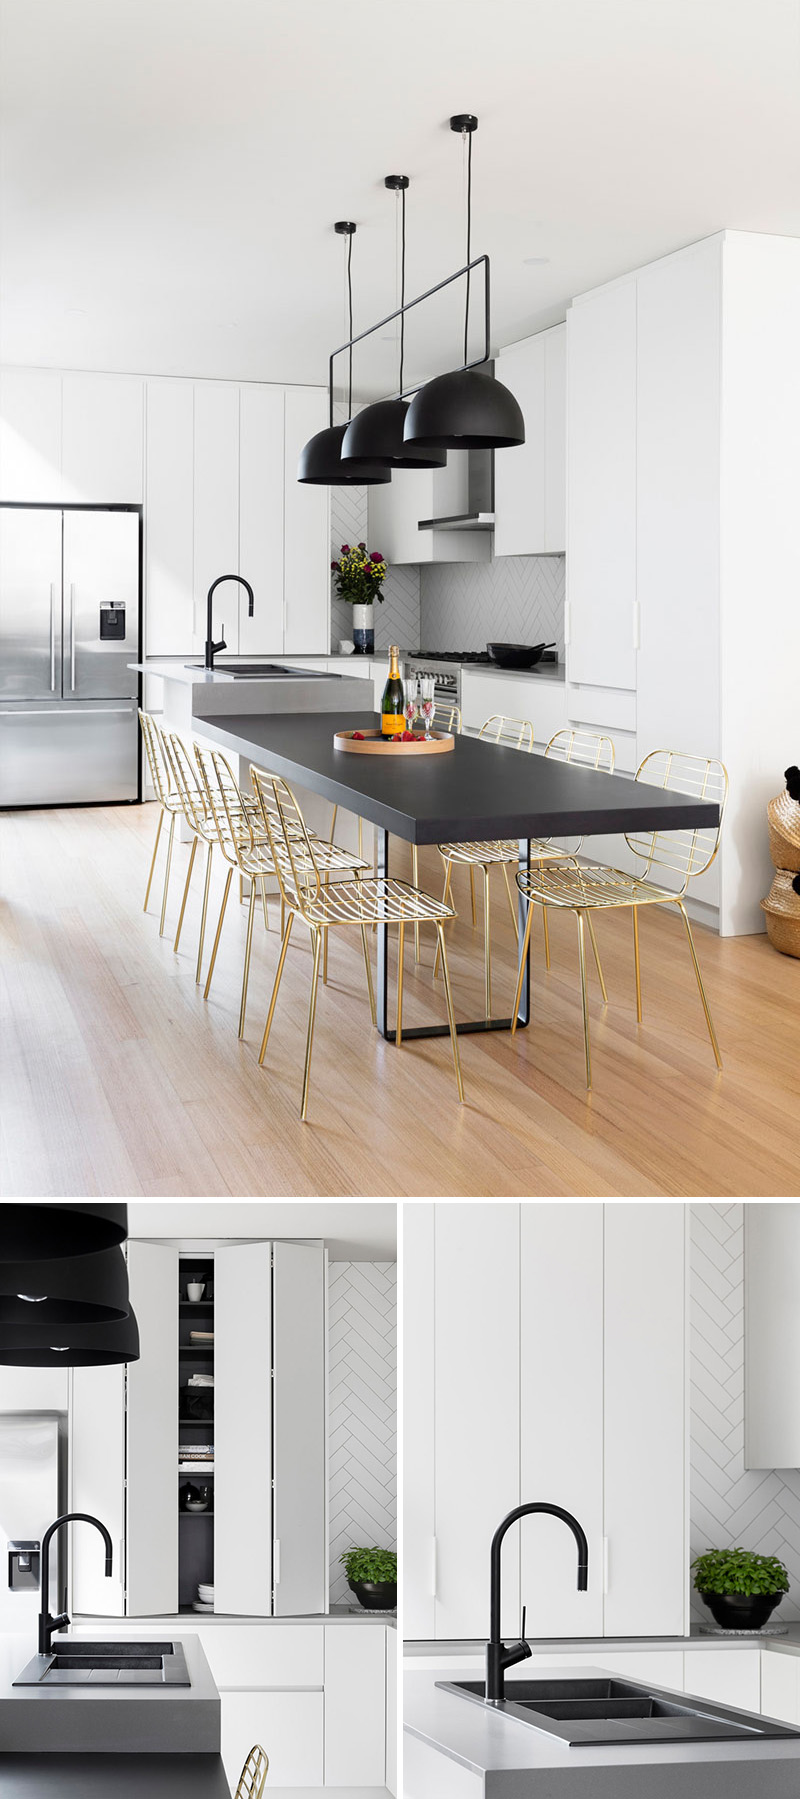 Modern Kitchen Design Elements This Modern Kitchen Update Received Touches Of Black And Gold